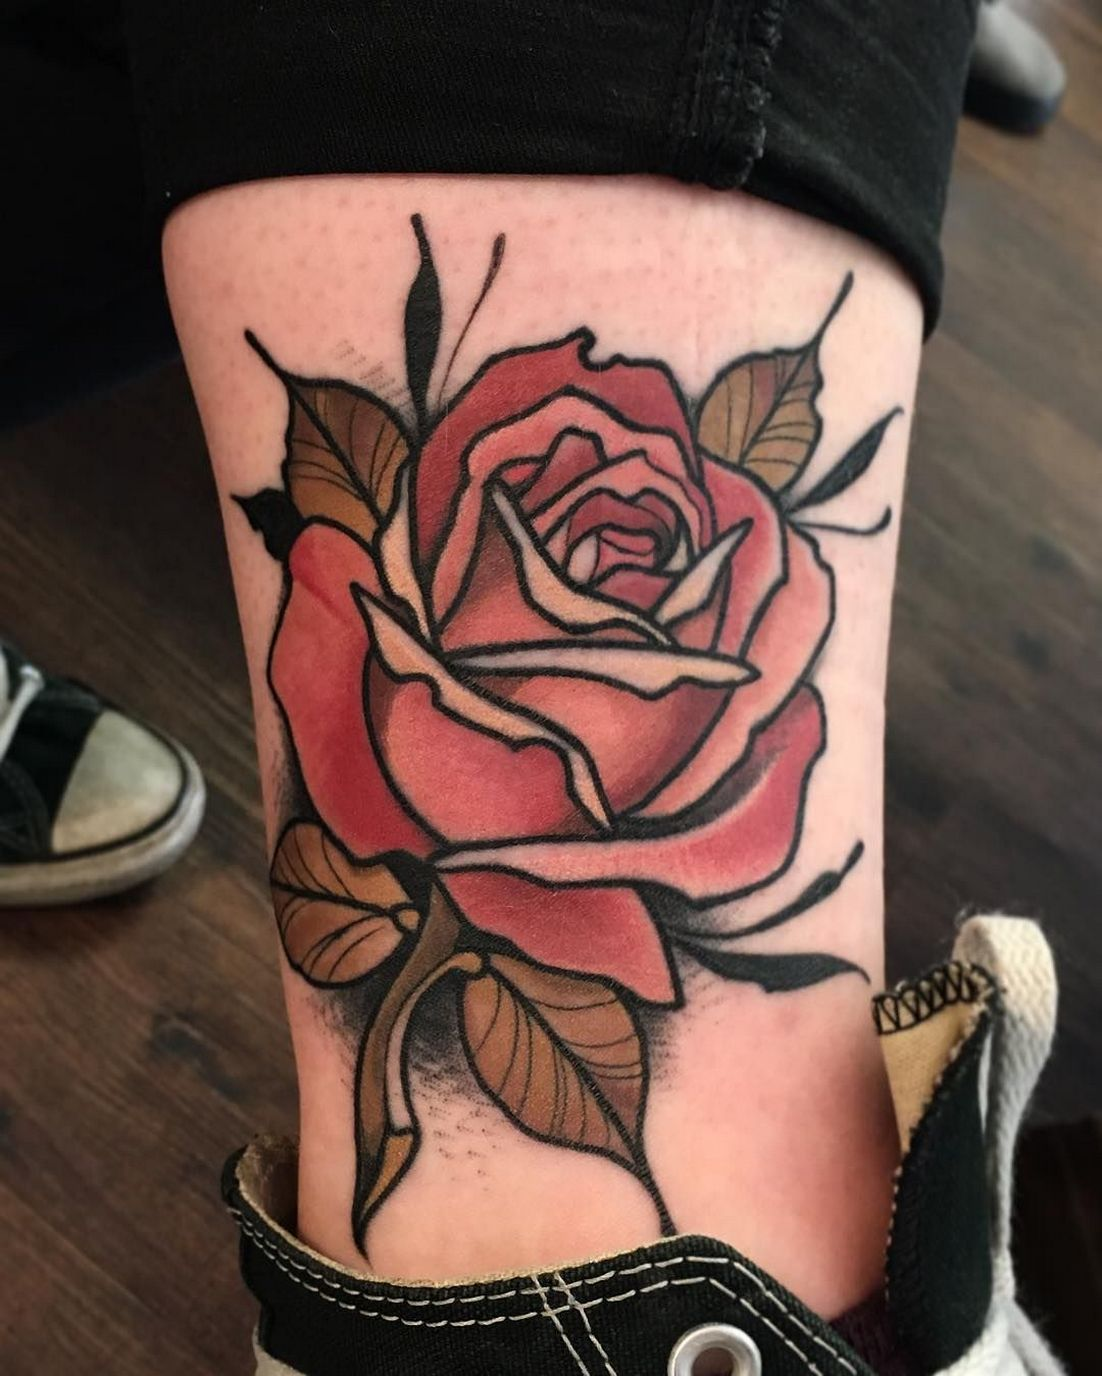 Neotraditional Rose Tattoo : neotraditional, tattoo, Generally, Tattoos, Demand, Numbing, Item., Tattoo, Indicates, Gracious, Peacock, Overlooking, Traditional, Tattoos,, Design